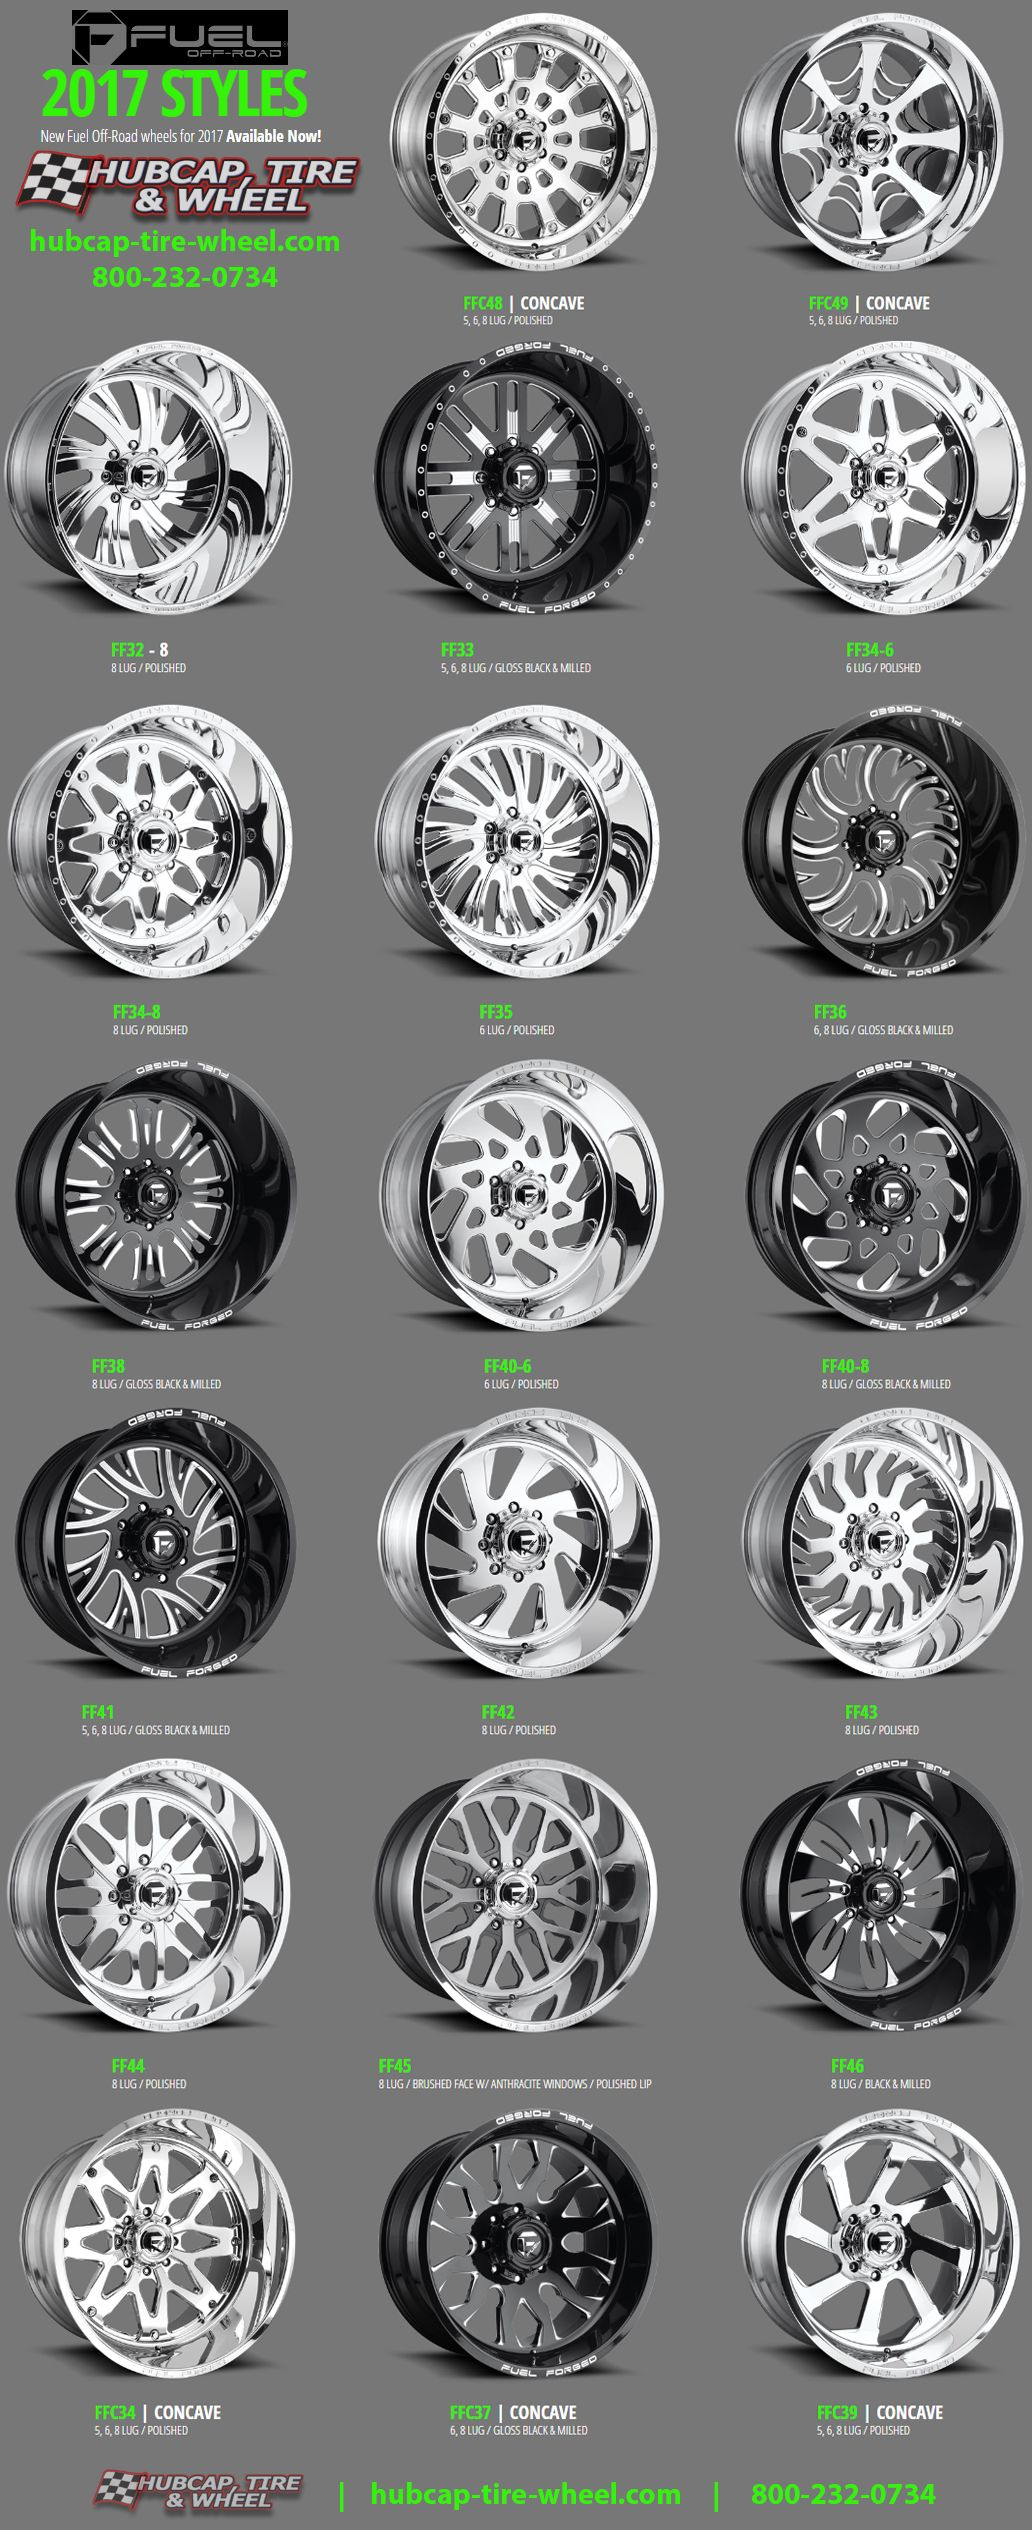 The new 2017 fuel off road forged wheels rims for jeeps trucks the new 2017 fuel off road forged wheels rims for jeeps trucks suvs publicscrutiny Images